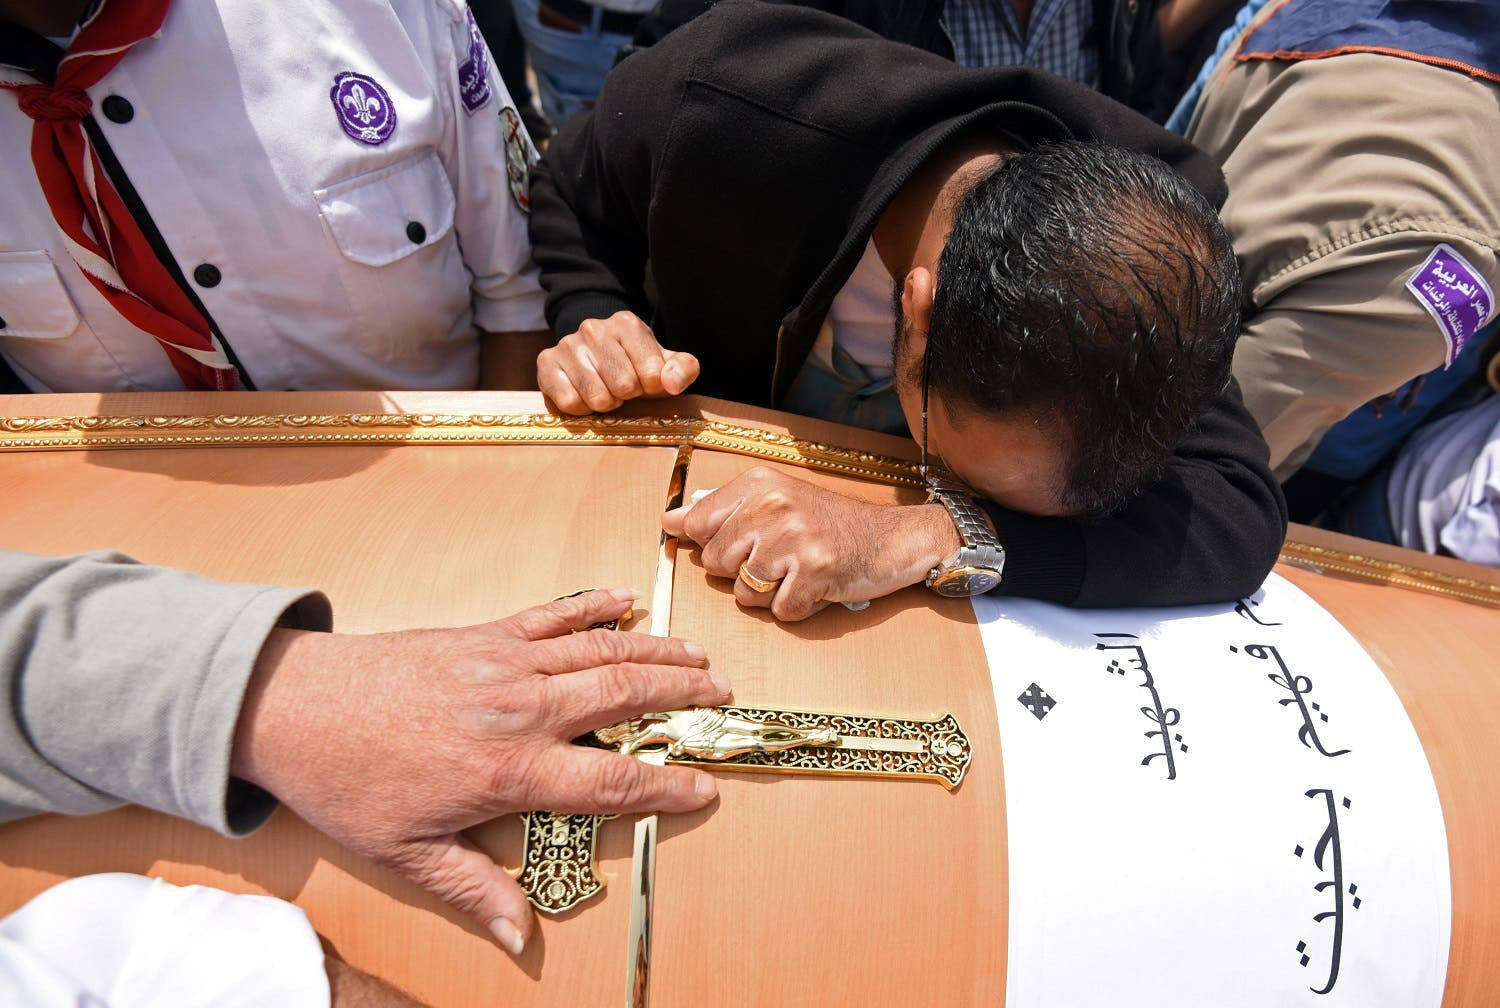 Men mourn over the coffin of one of the victims of the blast at the Coptic Christian Saint Mark's church in Alexandria the previous day during a funeral procession at the Monastery of Marmina in the city of Borg El-Arab, east of Alexandria, on April 10, 2017. Egypt prepared to impose a state of emergency after jihadist bombings killed dozens at two churches in the deadliest attacks in recent memory on the country's Coptic Christian minority. (AFP)